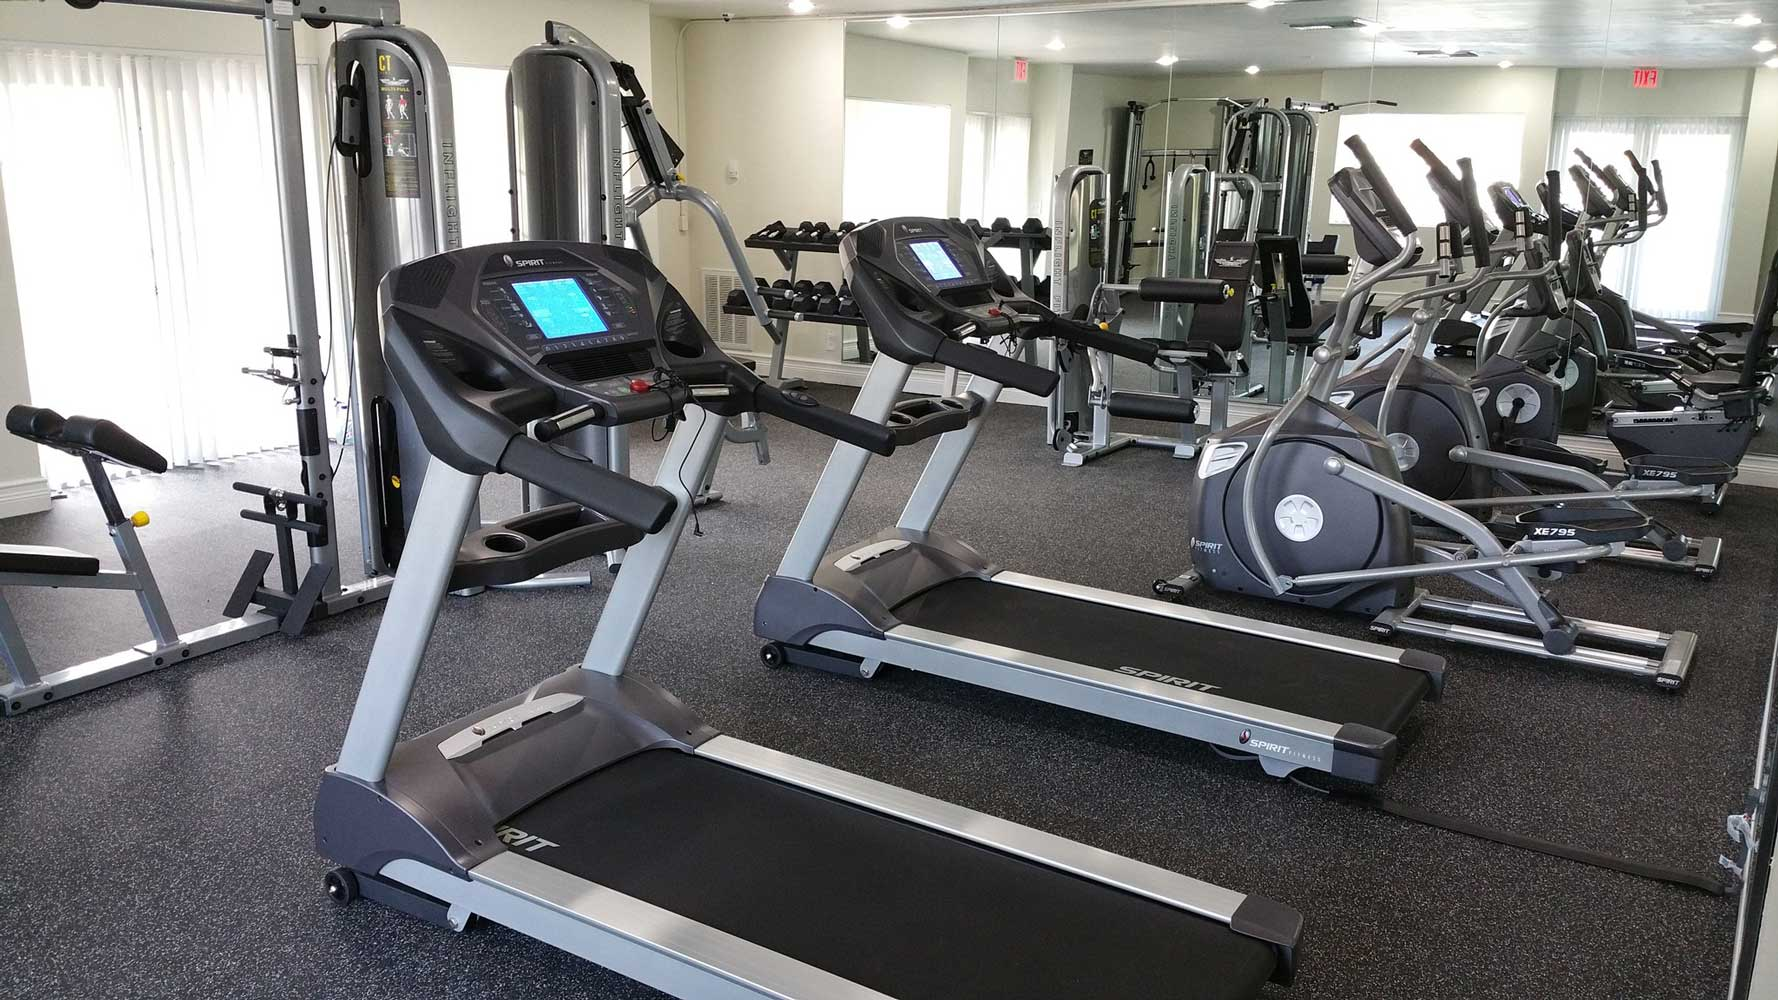 Cardio Equipment at Windsor Forest Apartments in Pompano Beach, FL